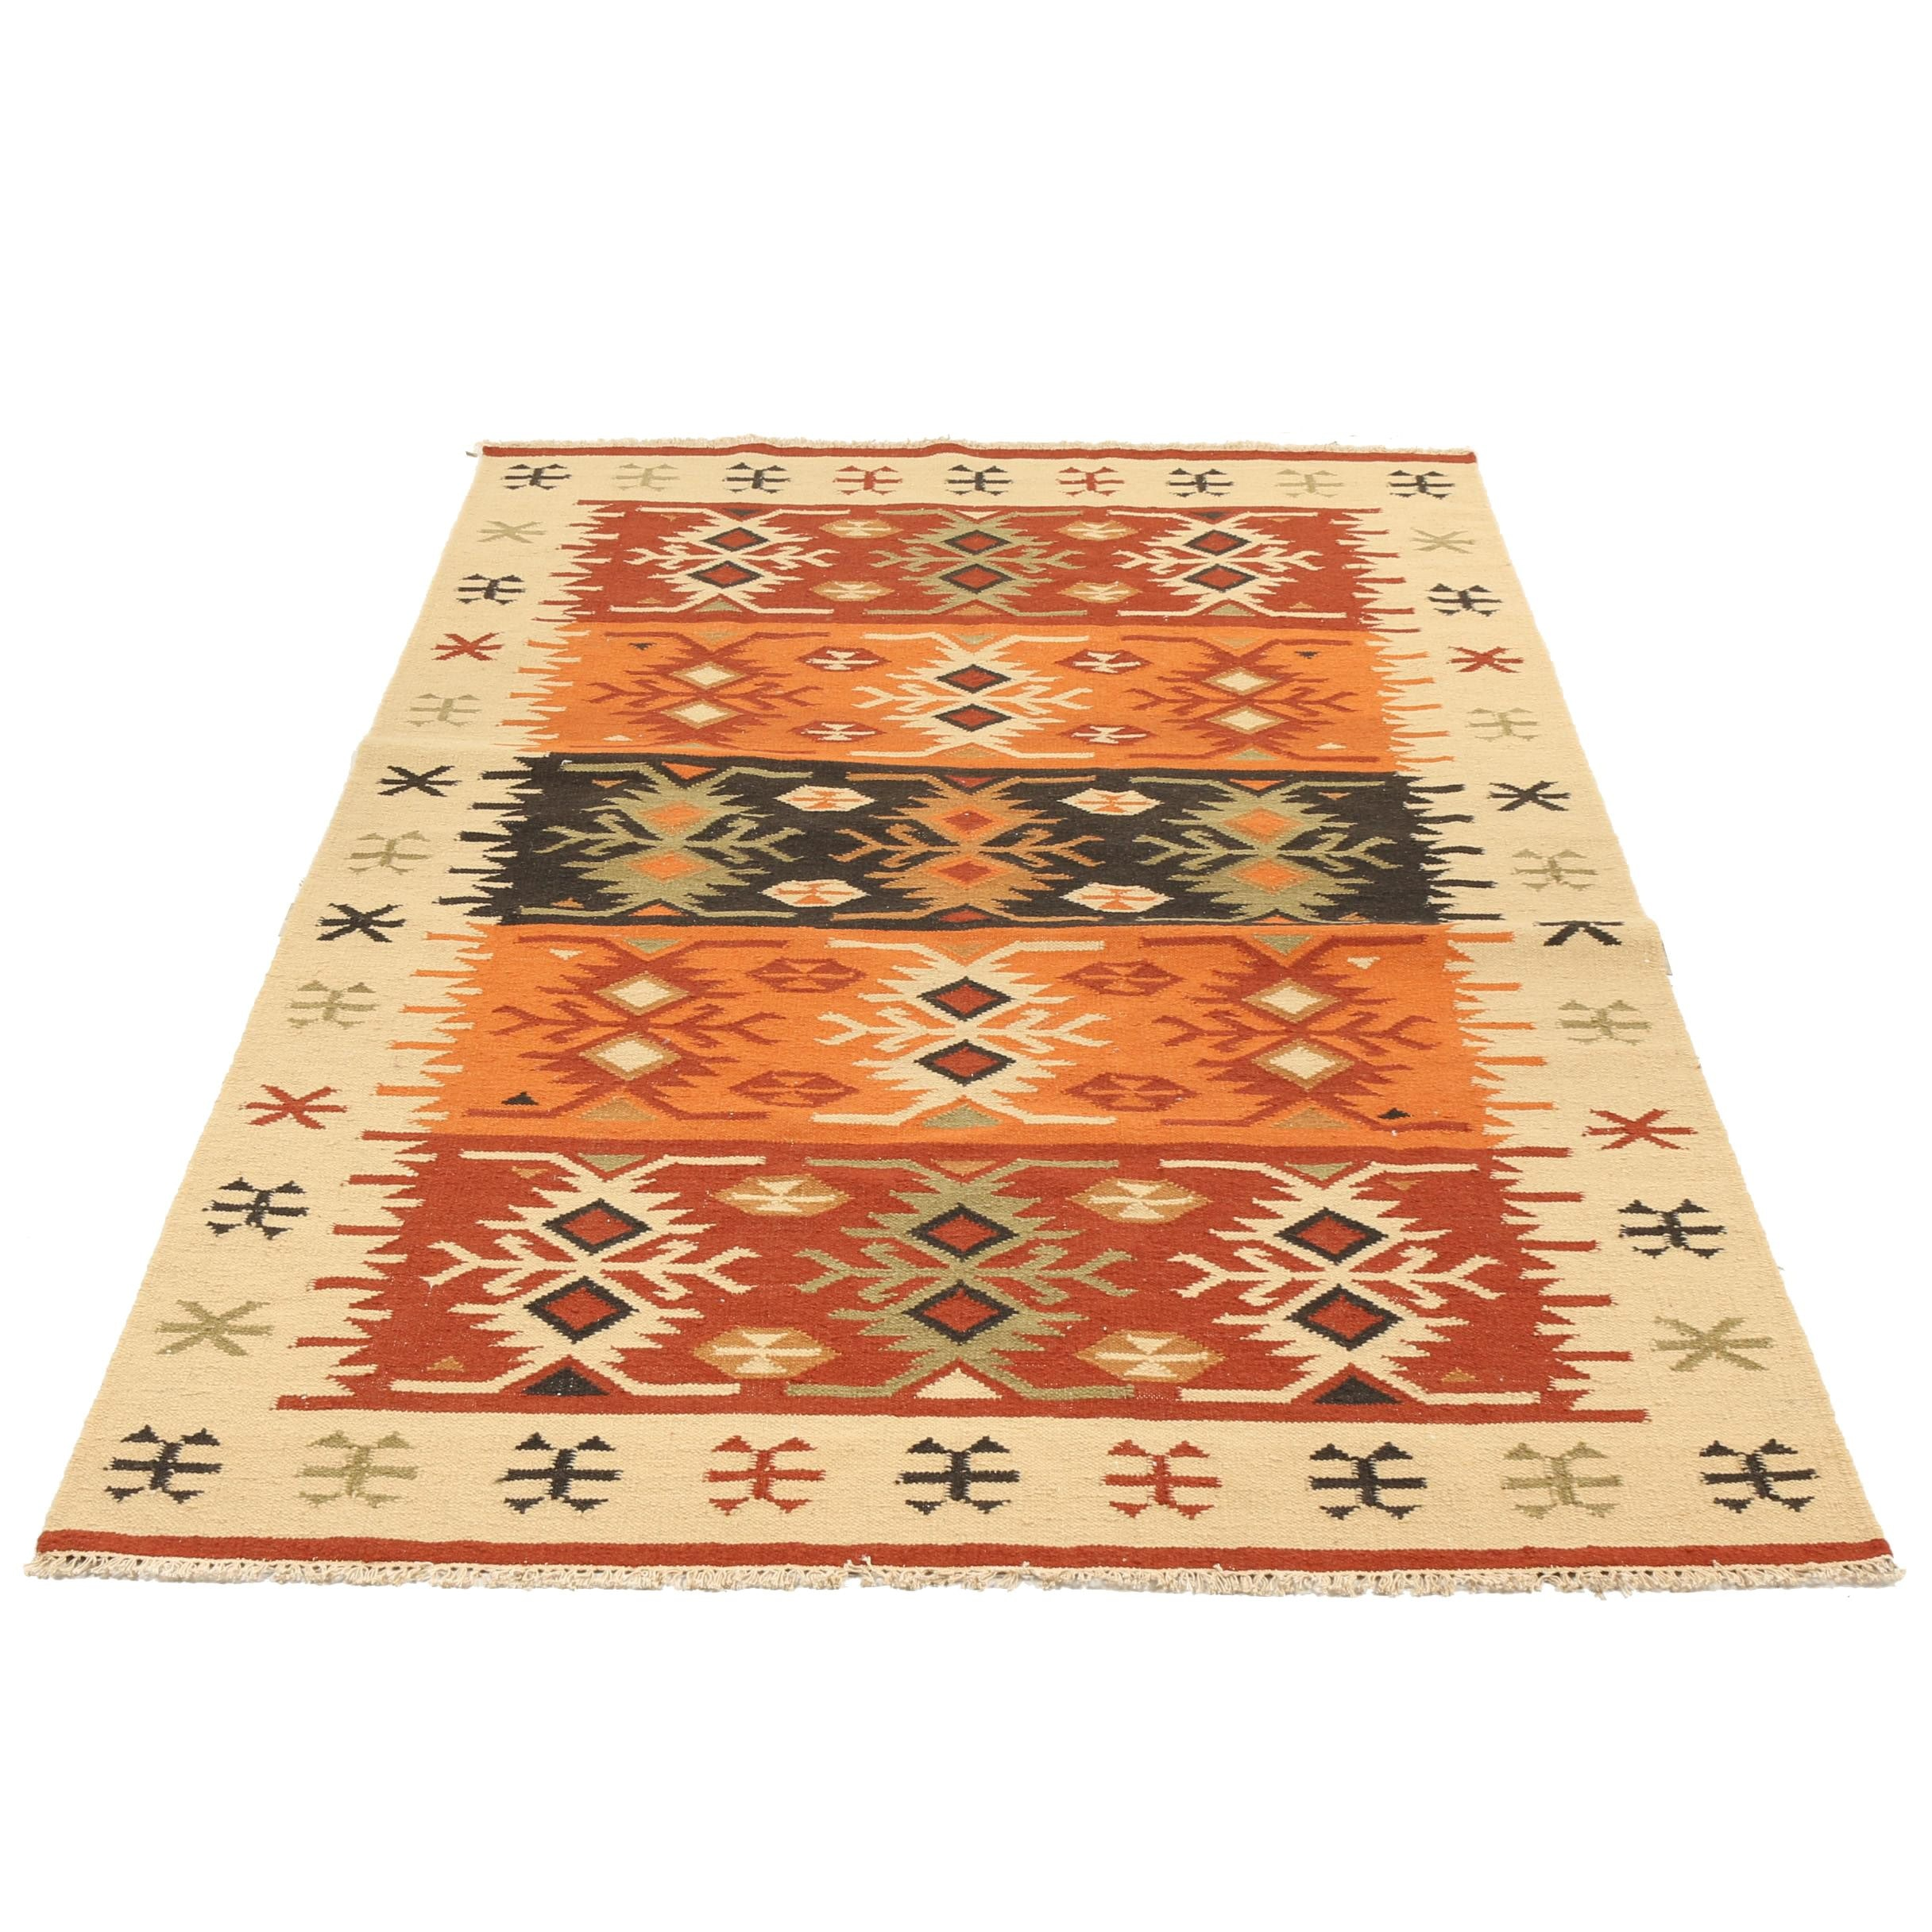 Handwoven Turkish Wool Kilim